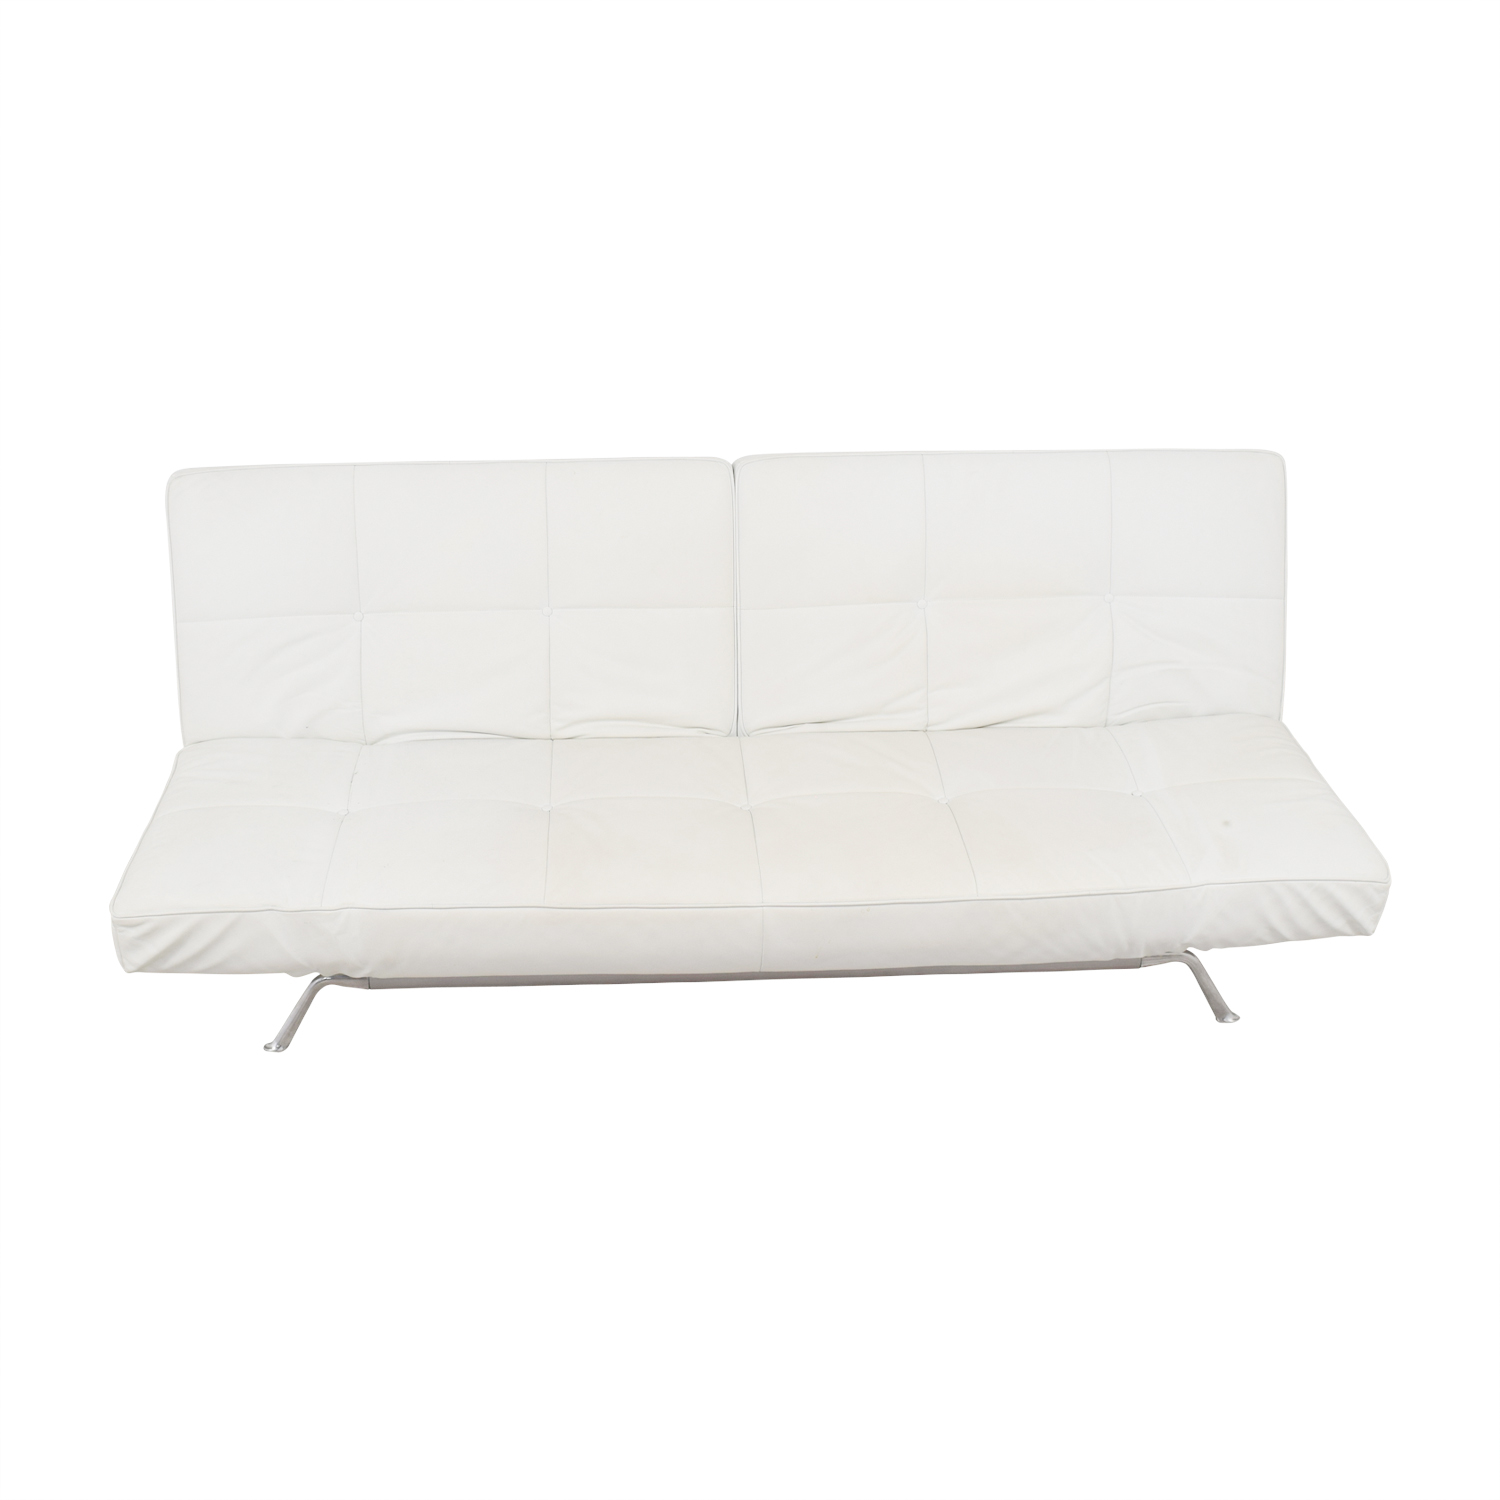 Ligne Roset White Leather Couch / Sofas